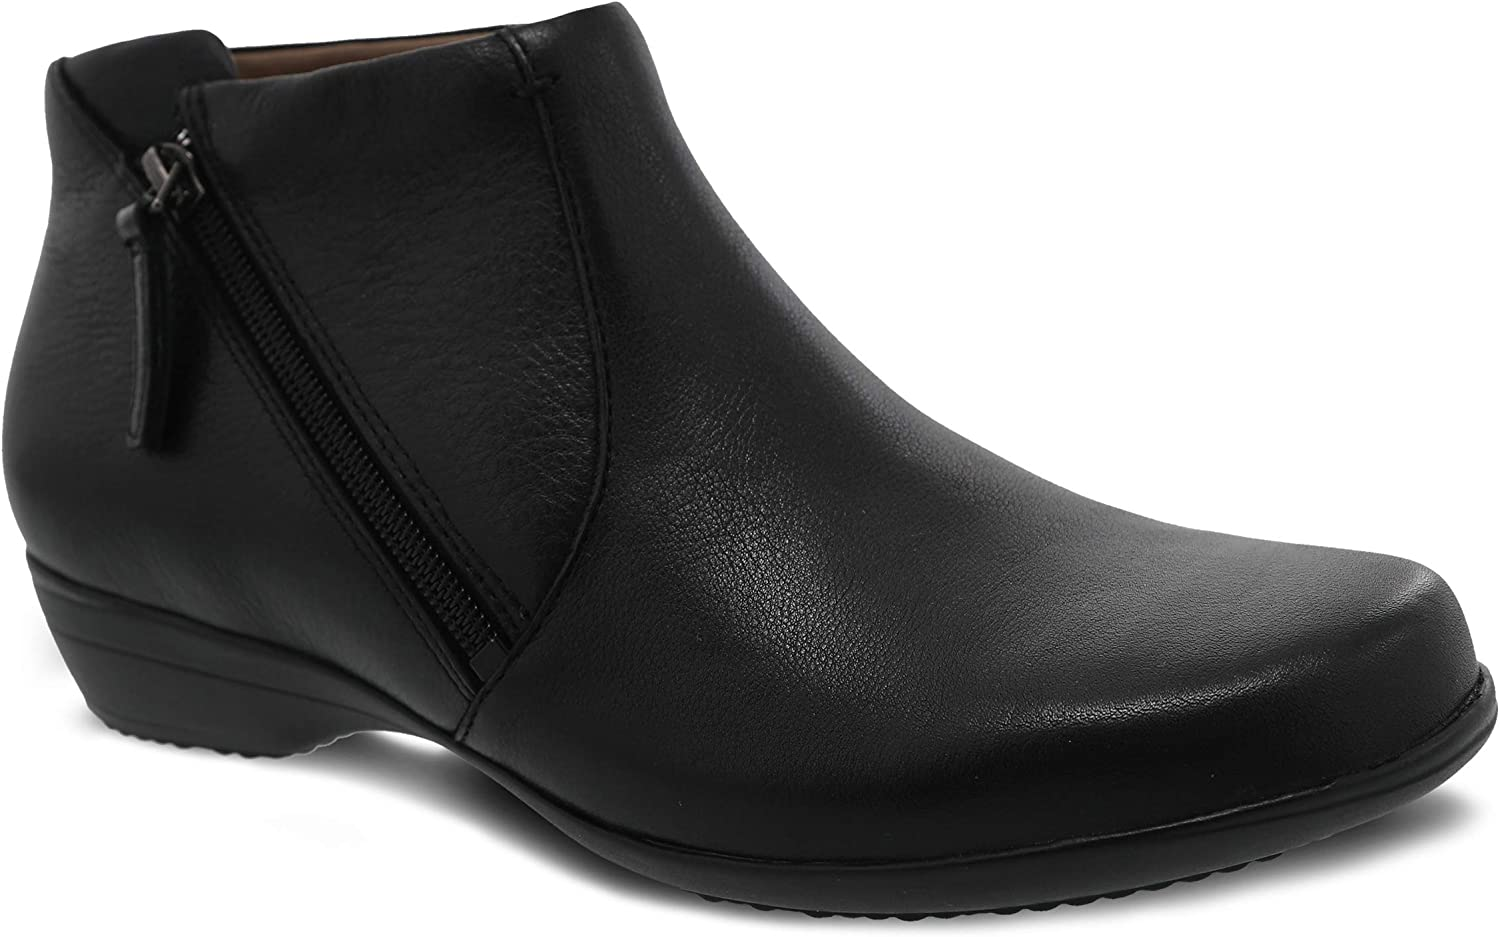 Dansko Women's Fifi Ankle Boot